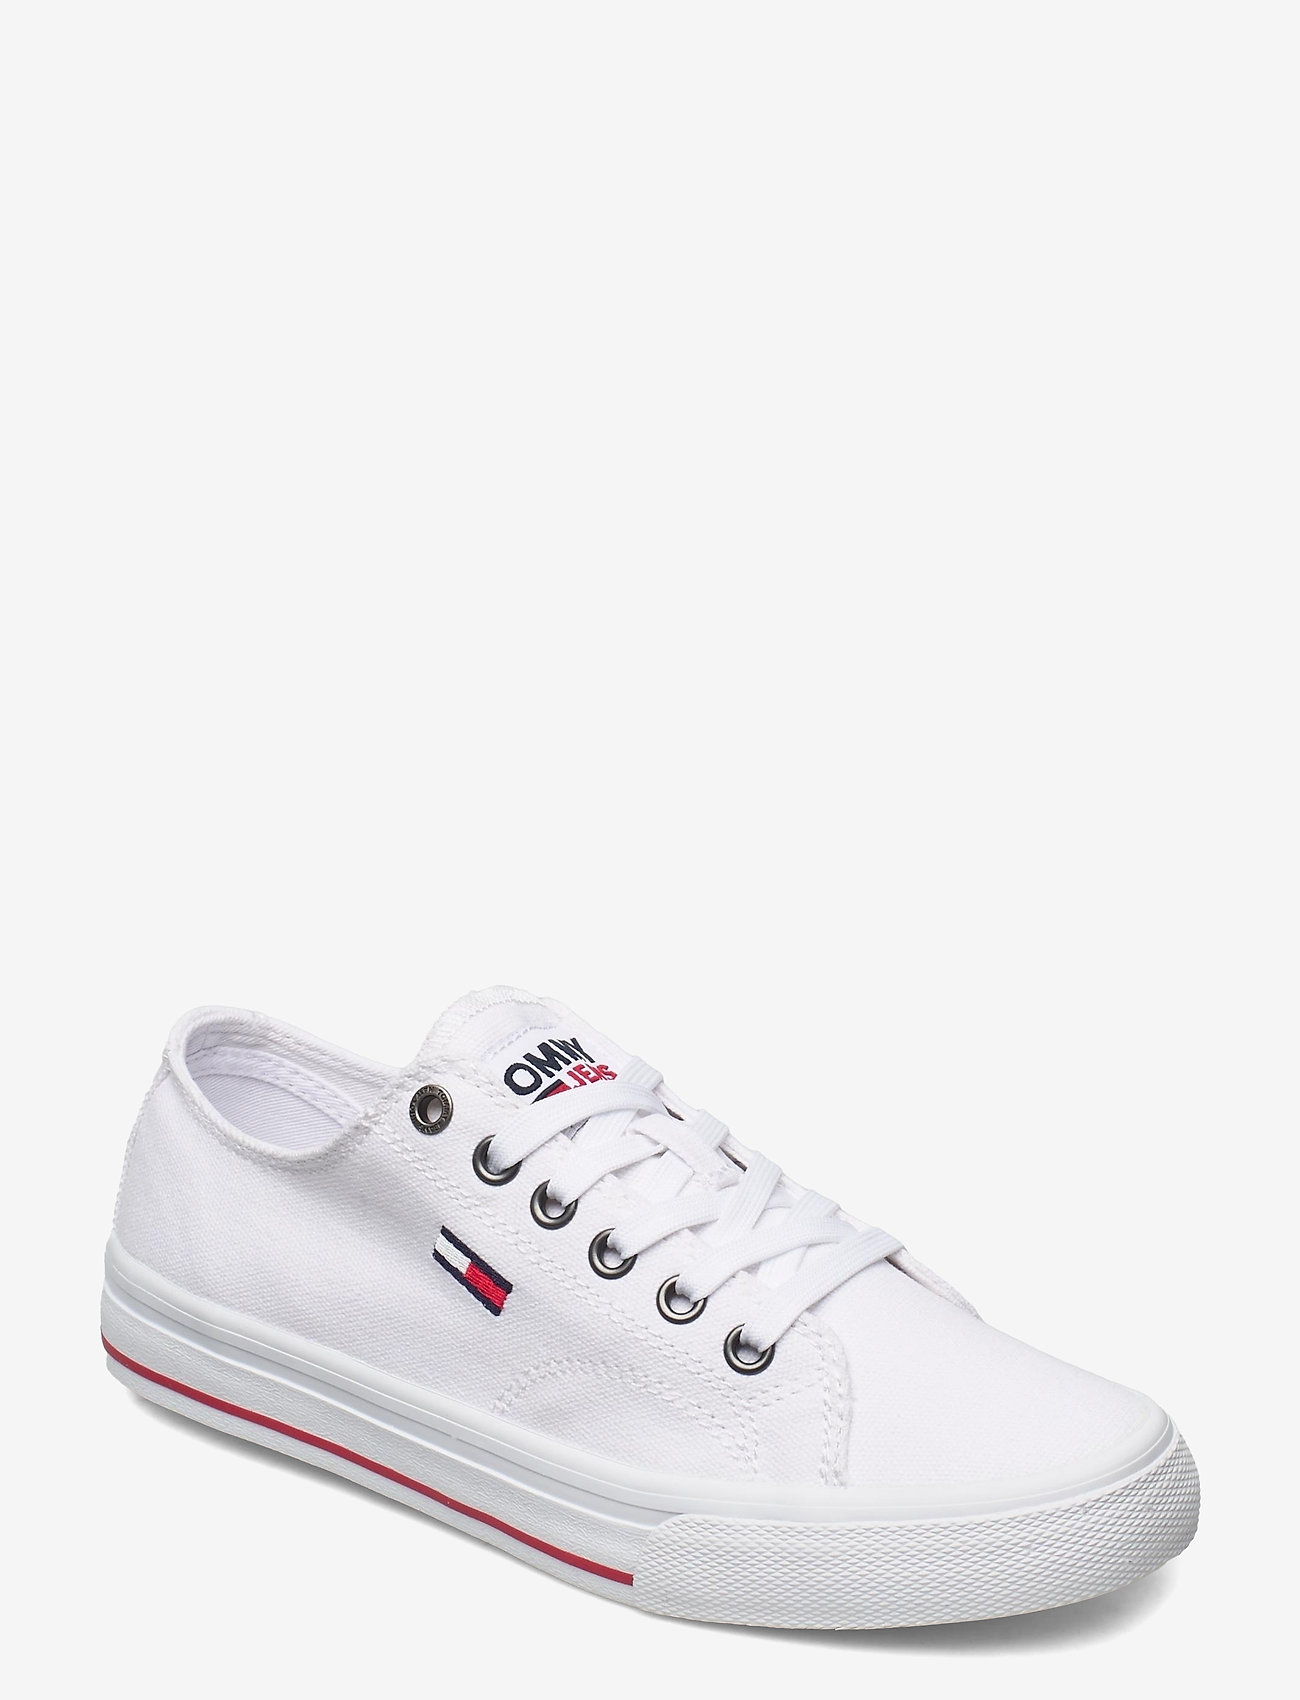 Tommy Hilfiger - TOMMY JEANS LOW CUT VULC - low top sneakers - white - 0